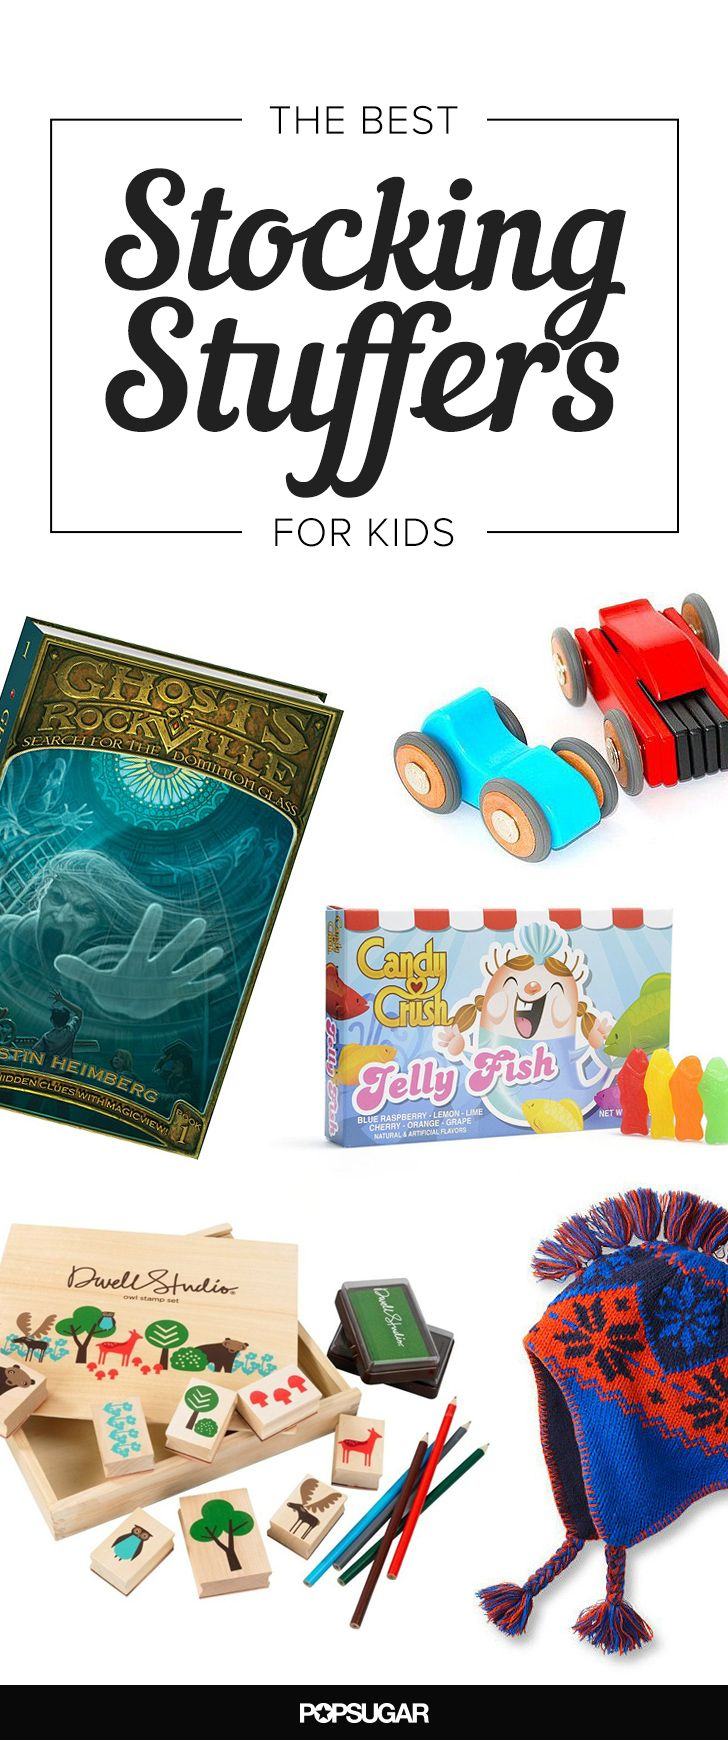 Great Gifts to Fill Kids' Stockings